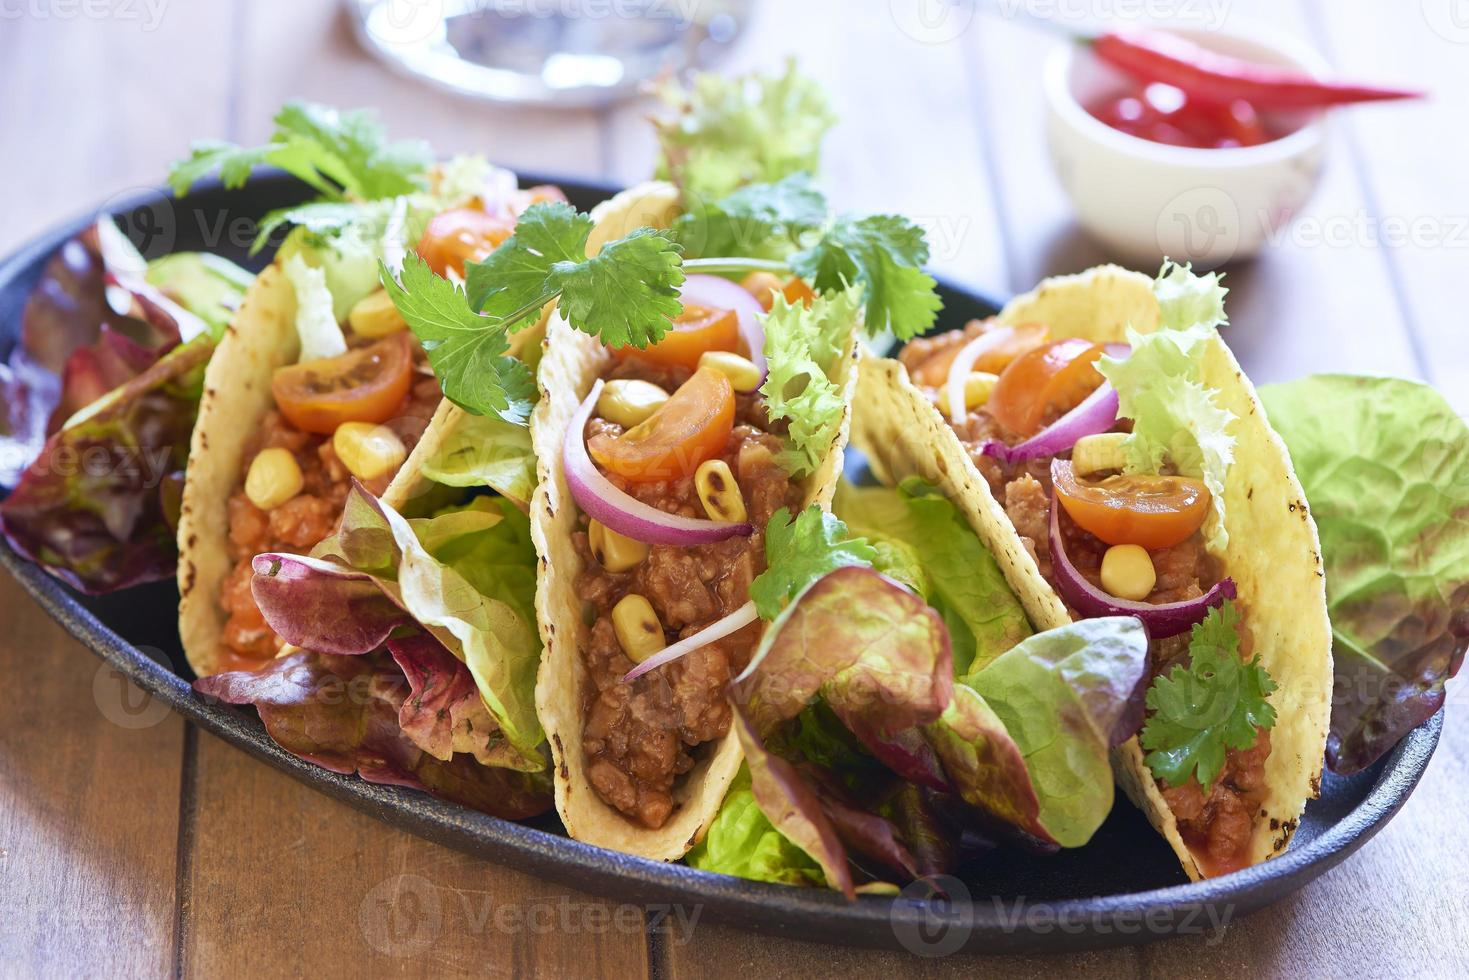 Plate with taco, salad and tomato dip photo